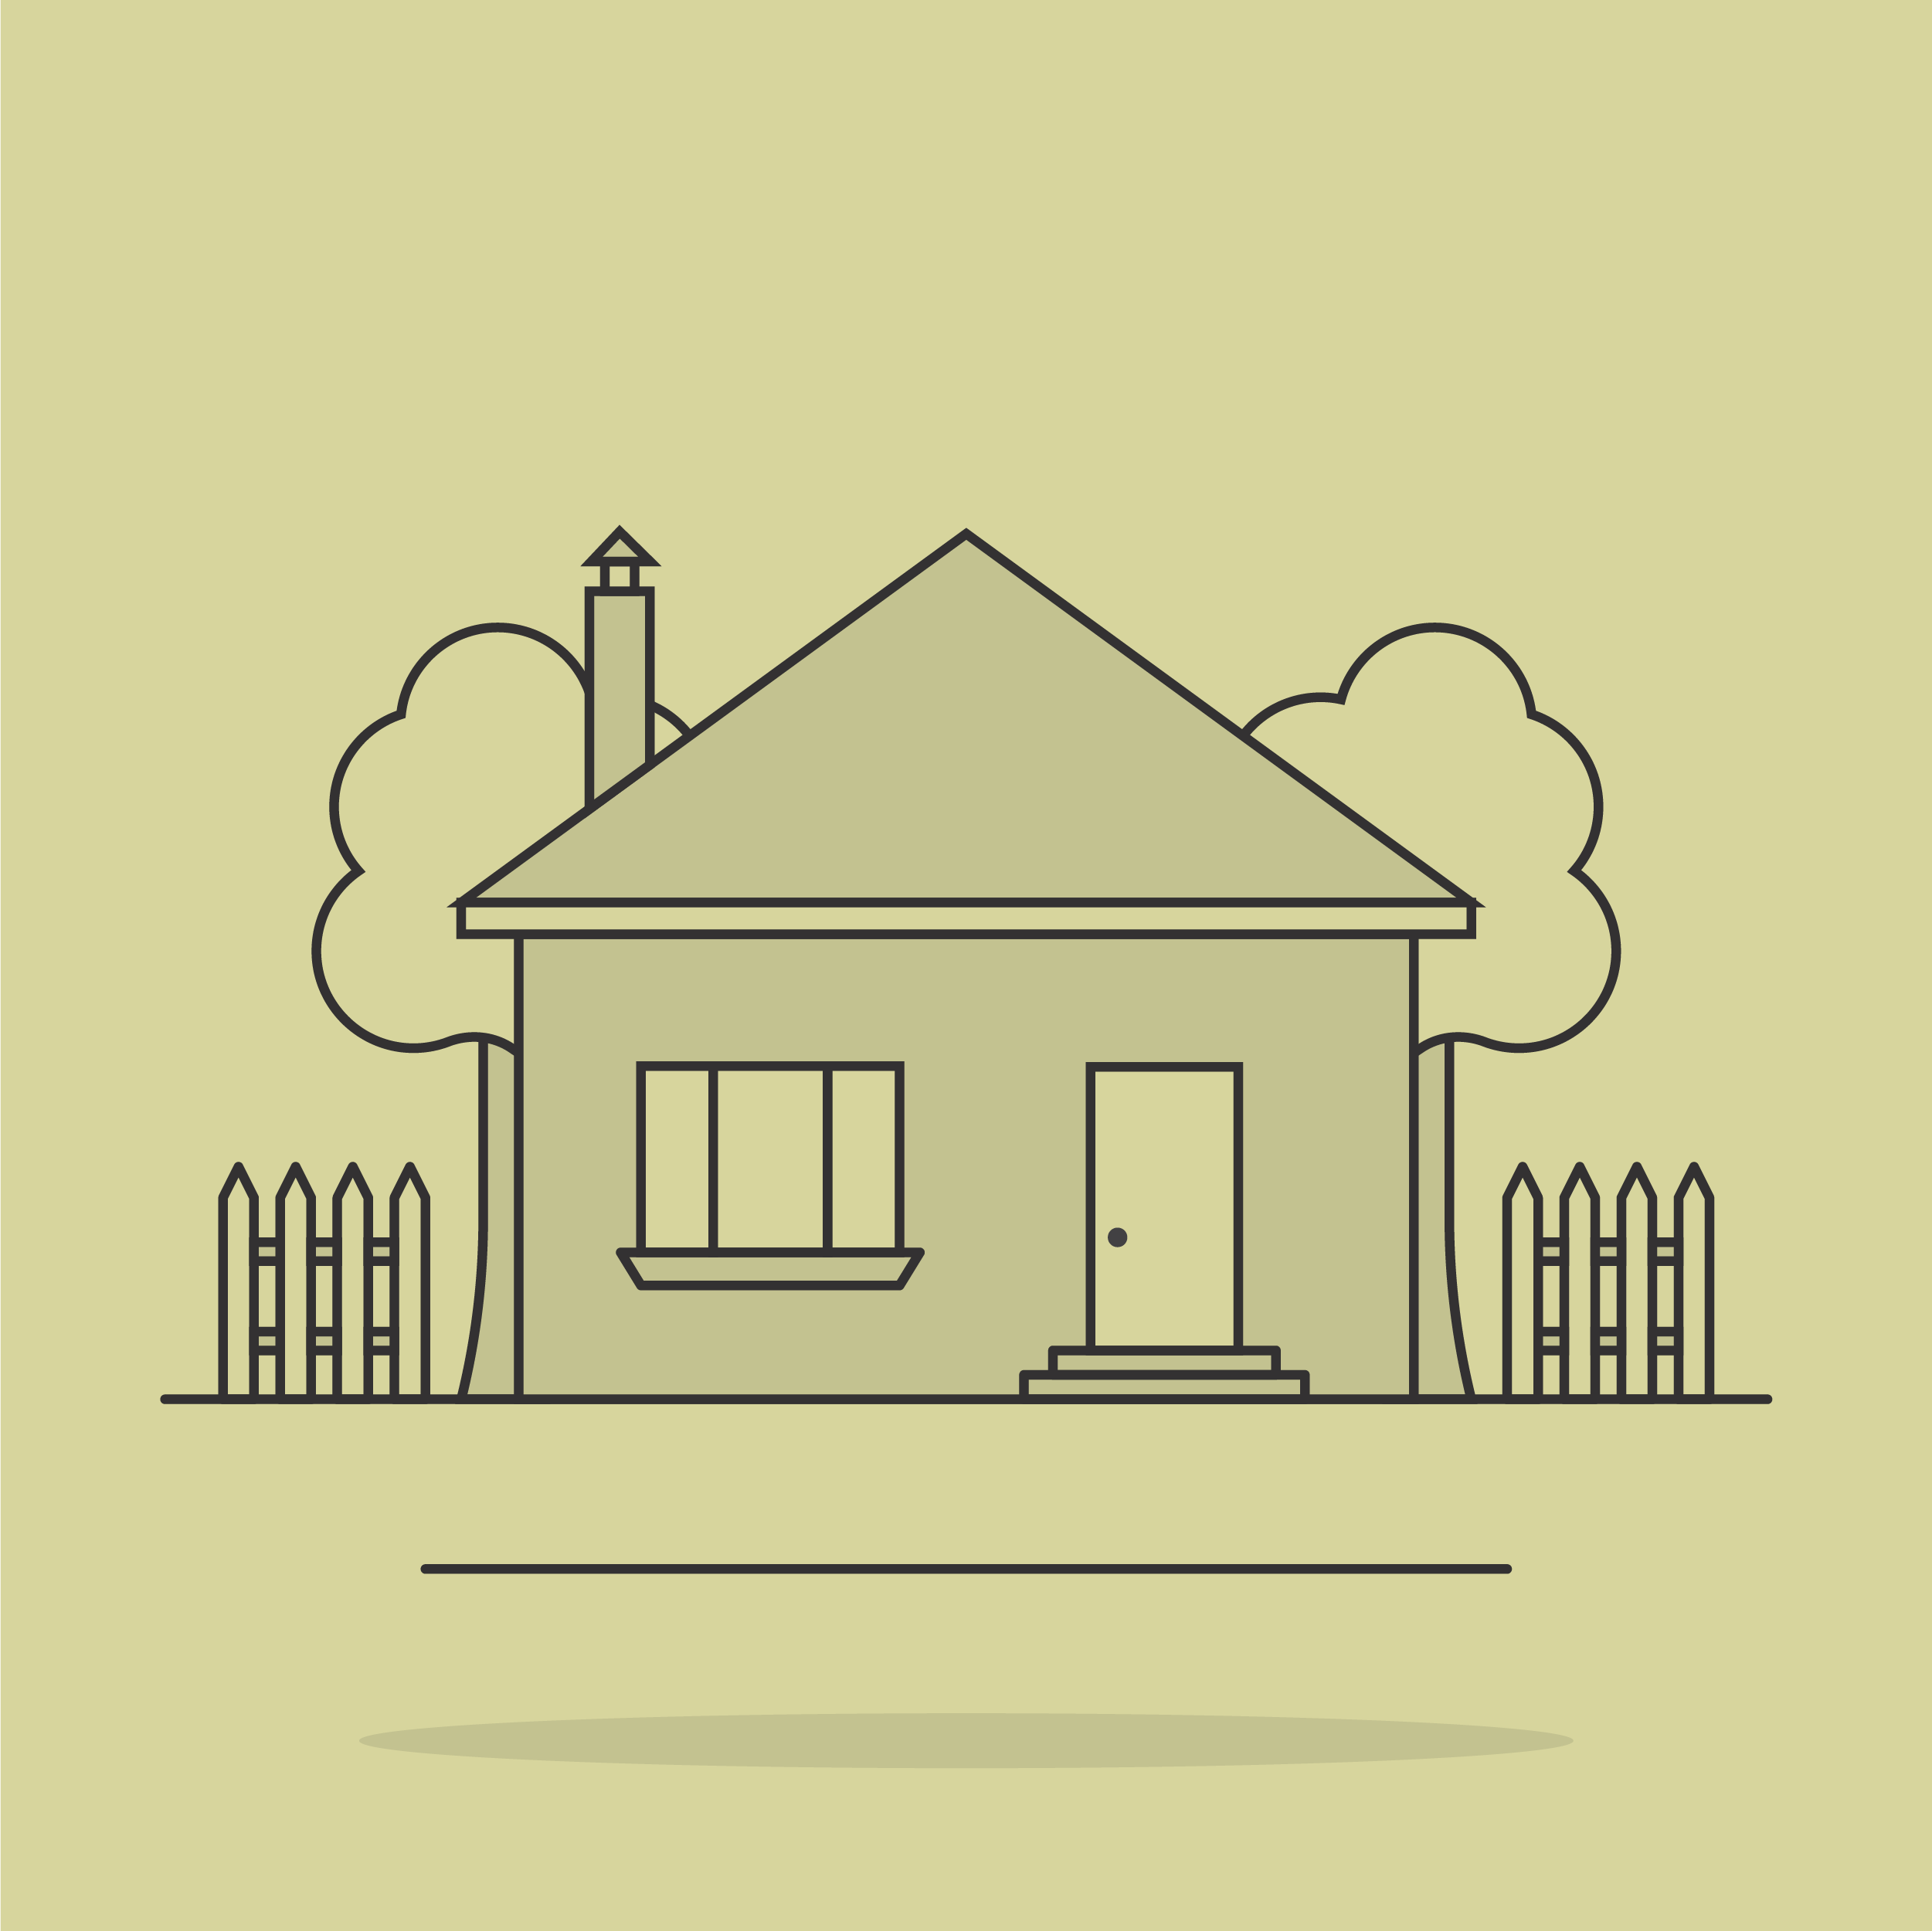 graphic of a suburban house